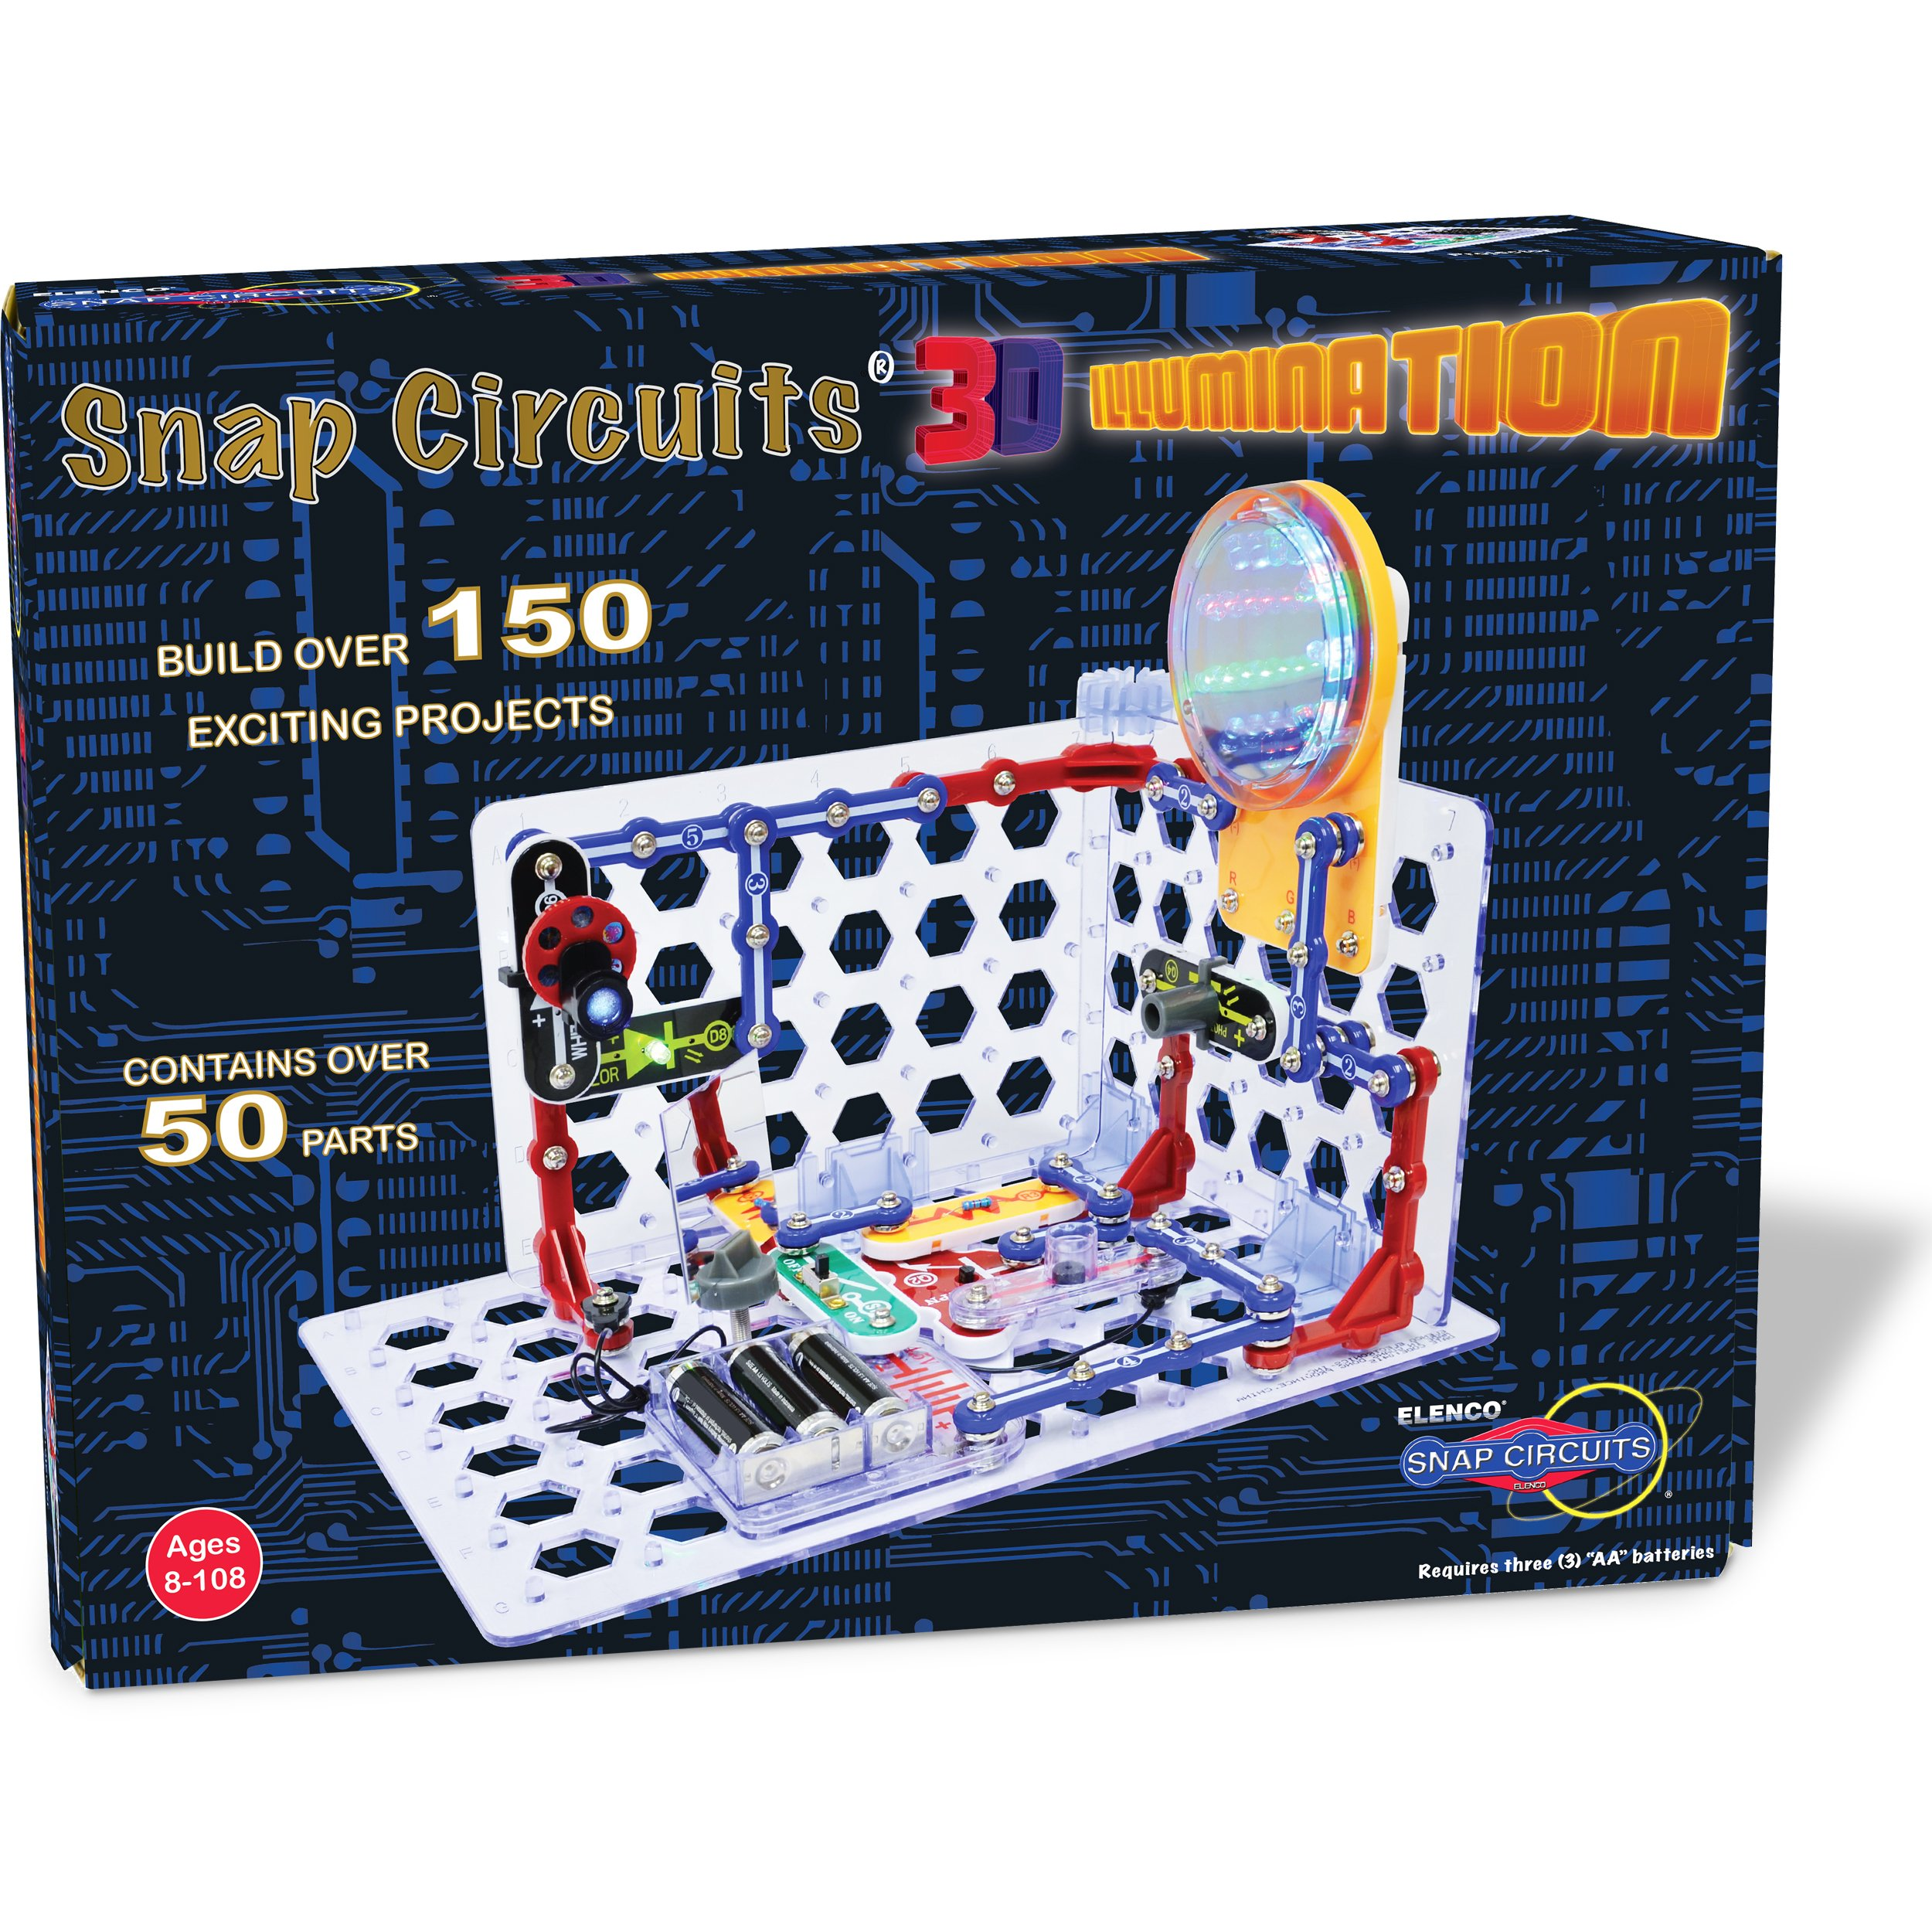 Snap Circuits 3D Illumination Electronics Exploration Kit | Over 150 STEM Projects | Full Color Project Manual | 50+ Snap Circuits Parts | STEM Educational Toys for Kids 8+ by Snap Circuits